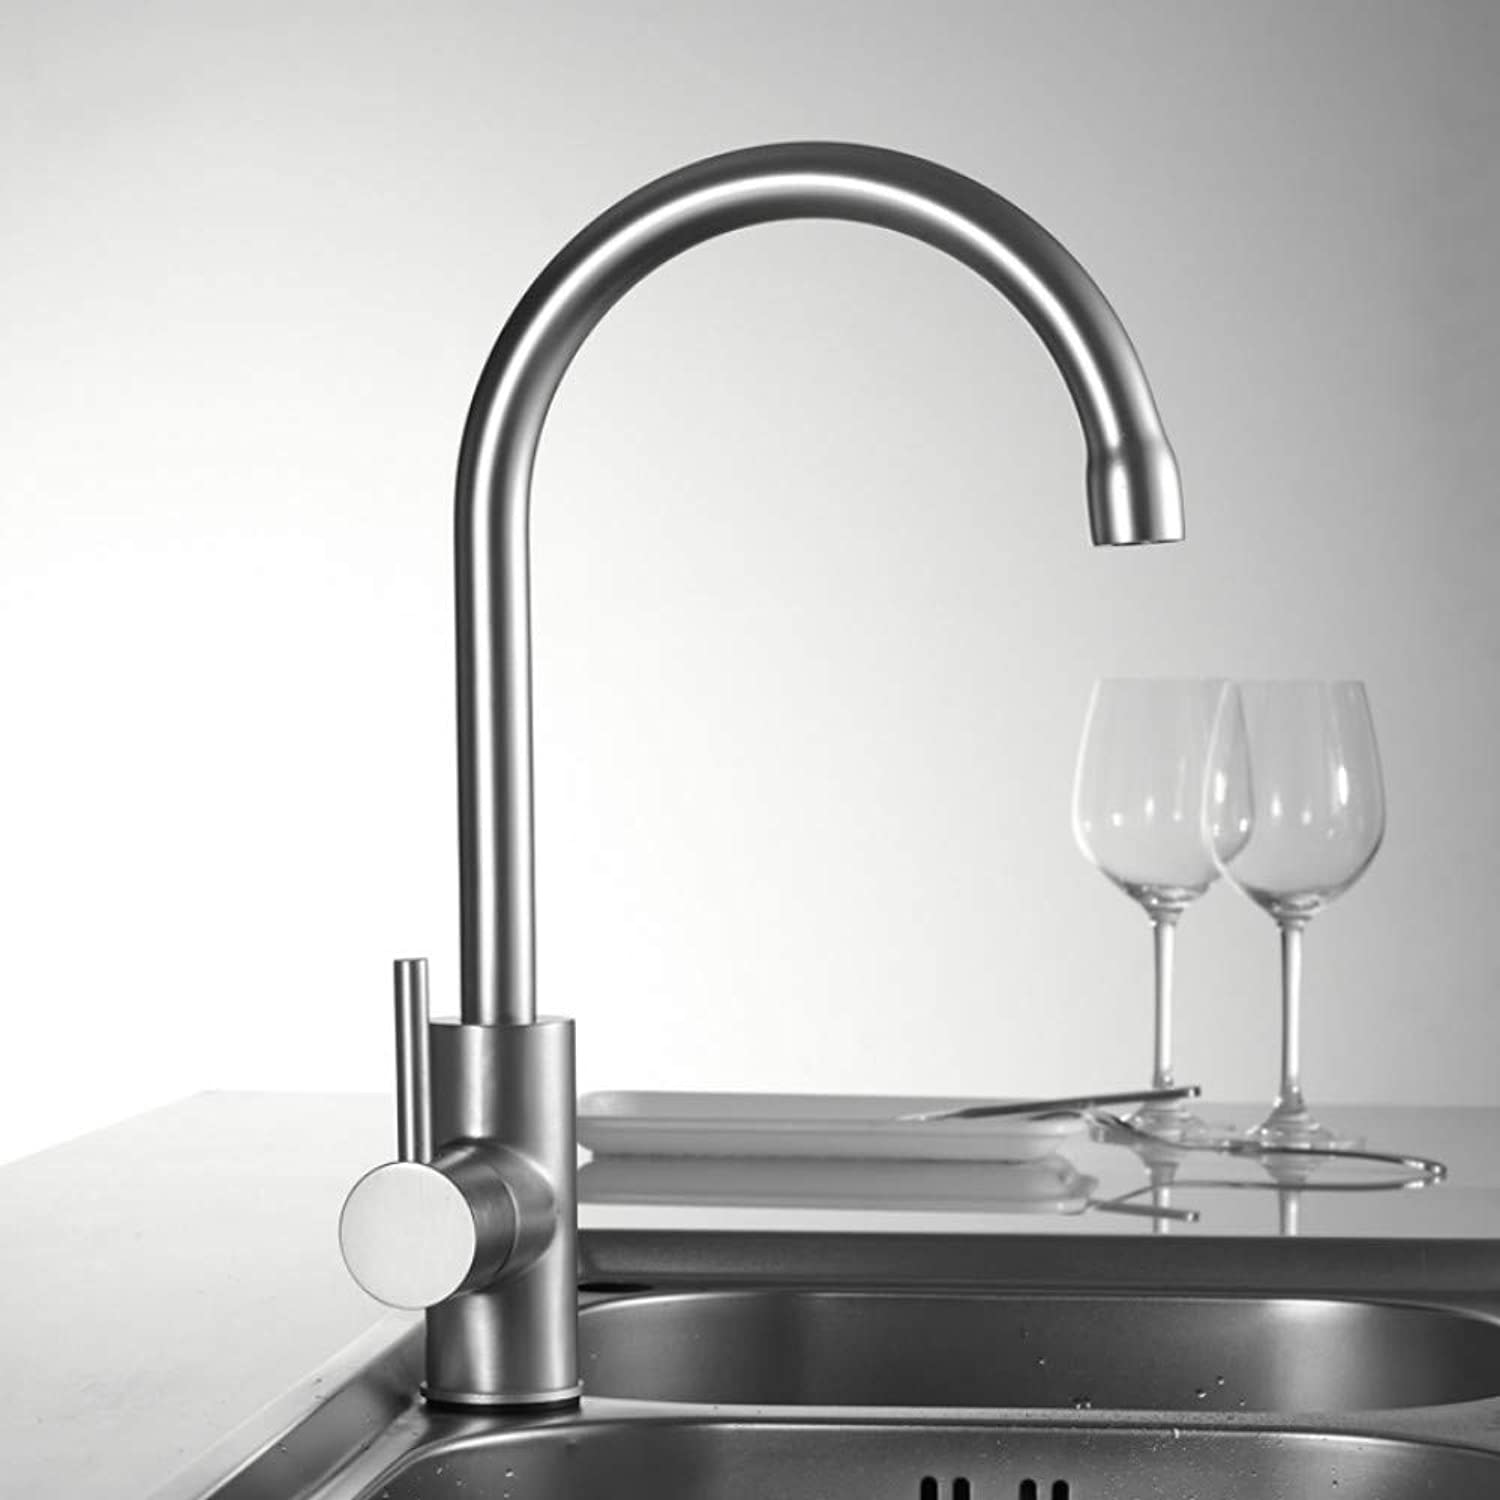 Mzdpp Kitchen Faucet Degree redation Curved Outlet Pipe Tap Basin Plumbing Hardware Kitchen Sink Faucet Water Mixer Faucets